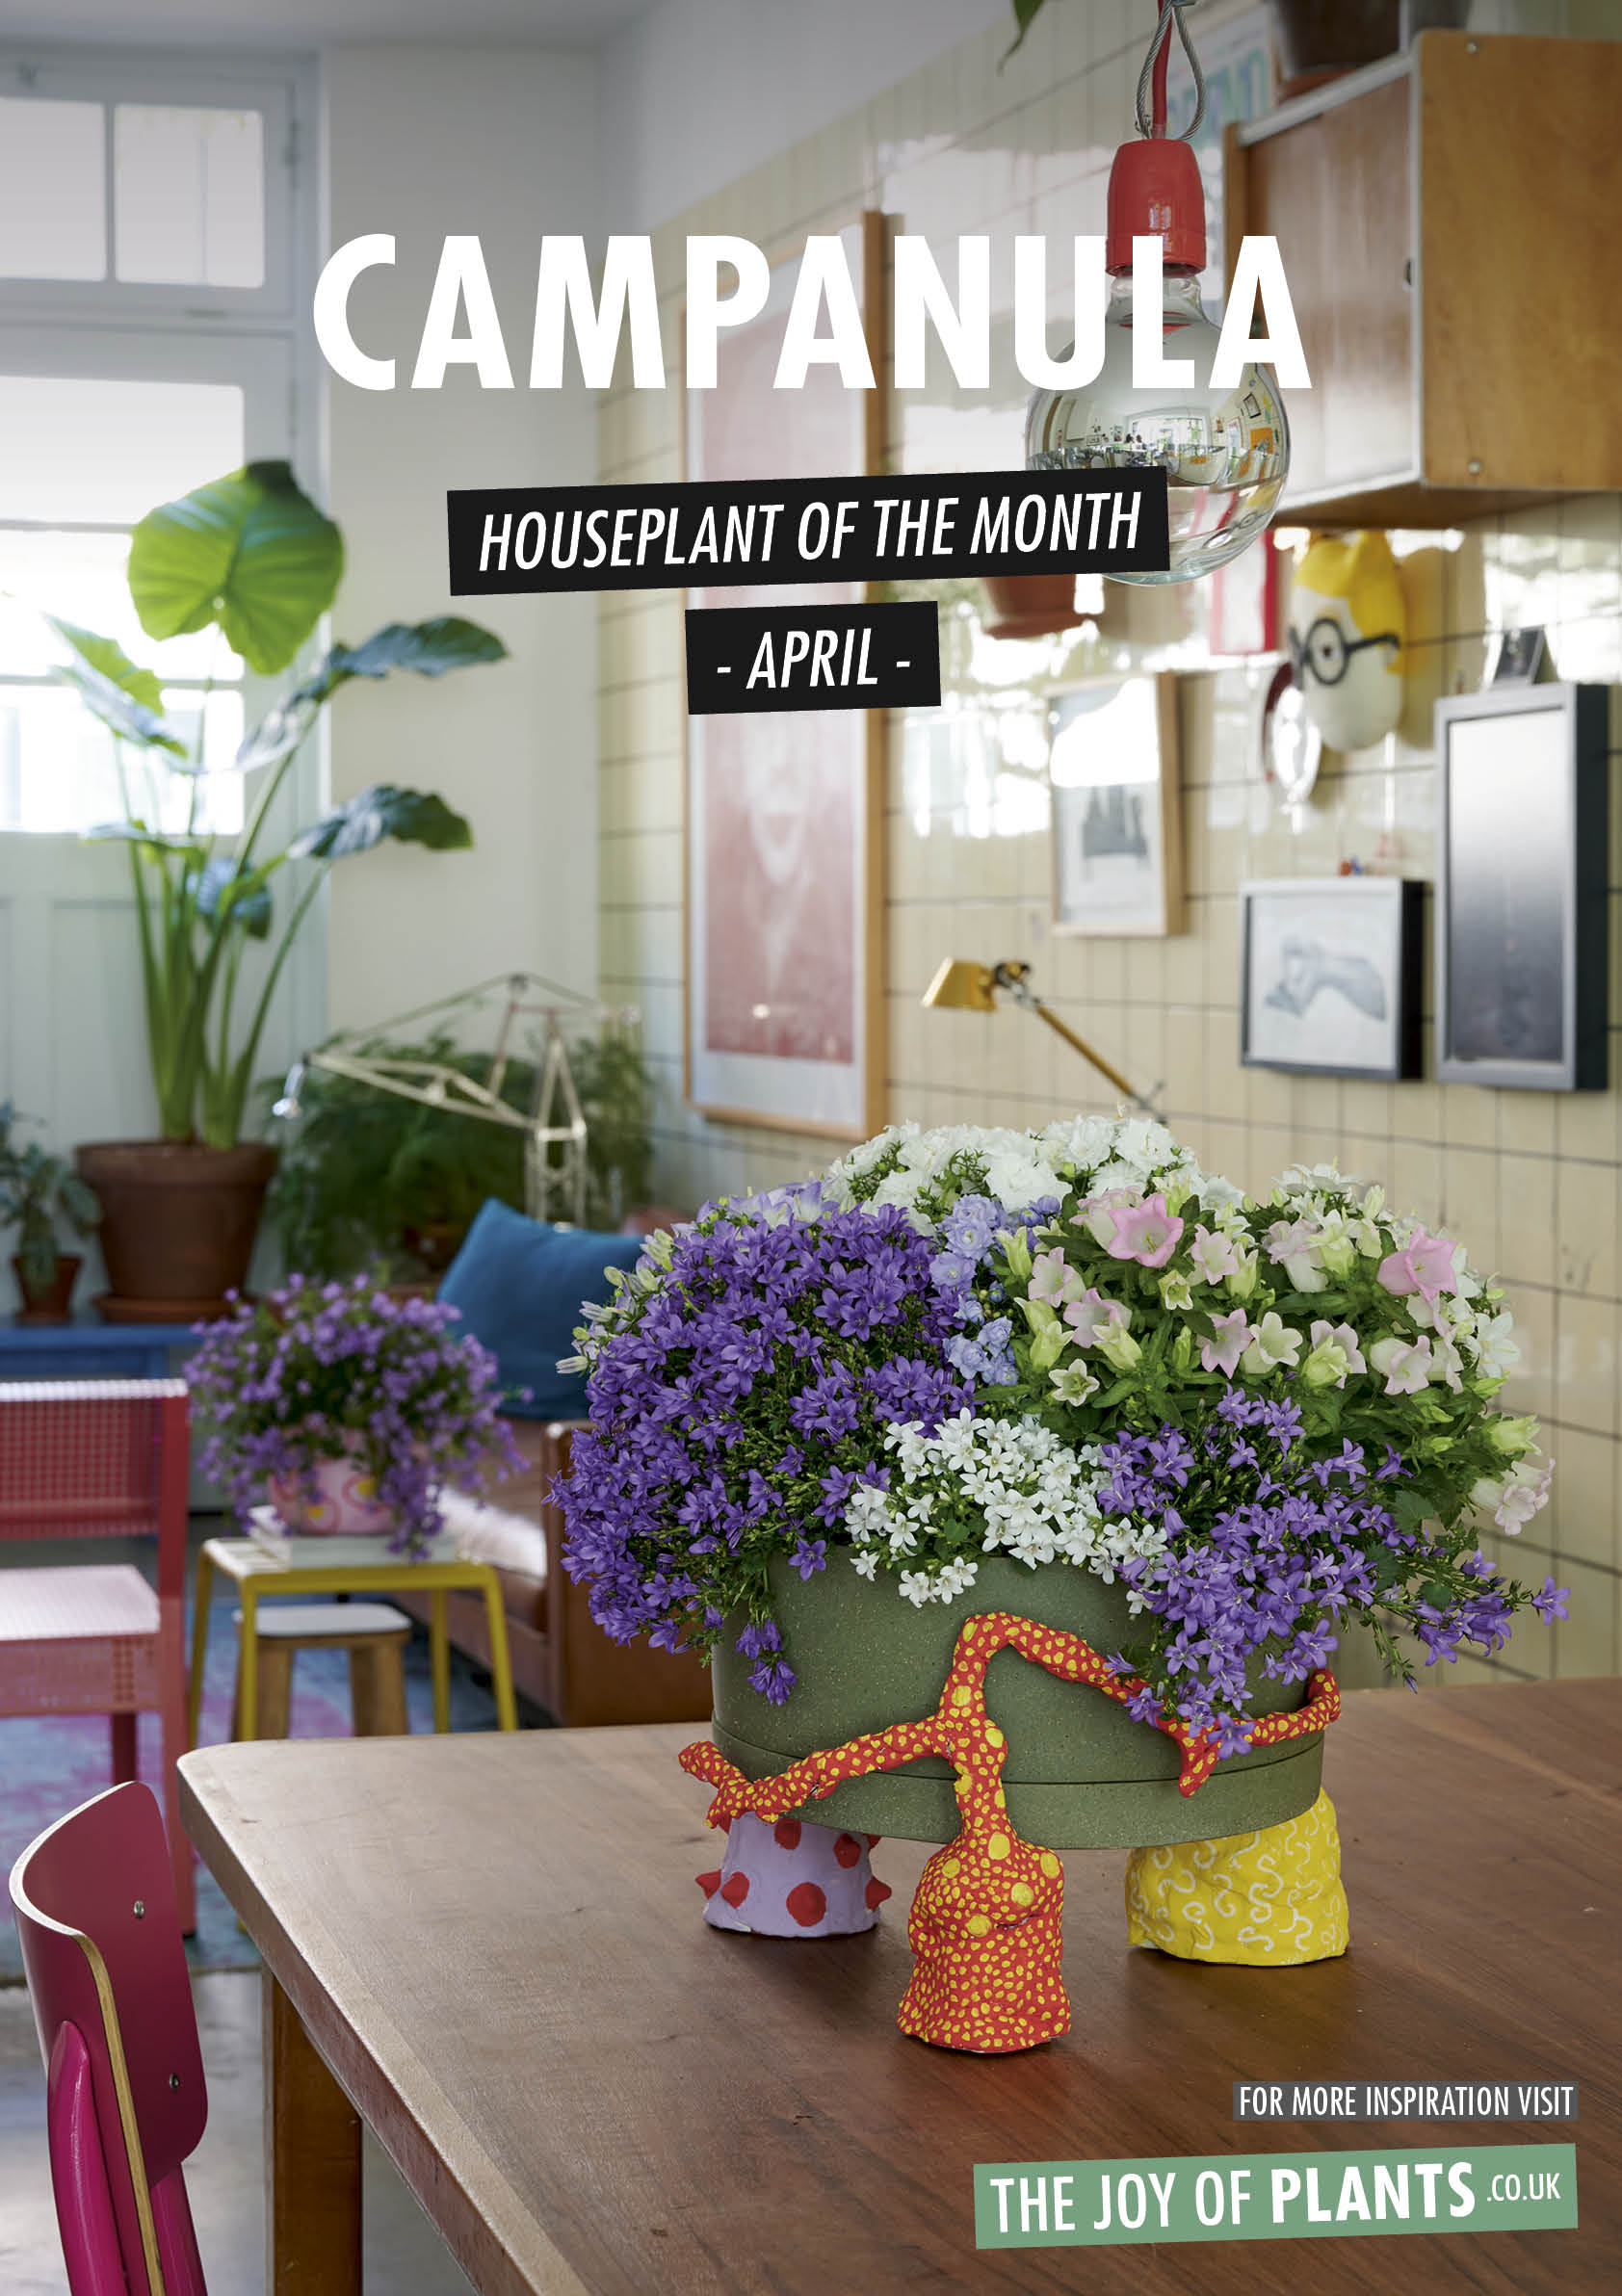 Campanula: Houseplant of the Month April 2020